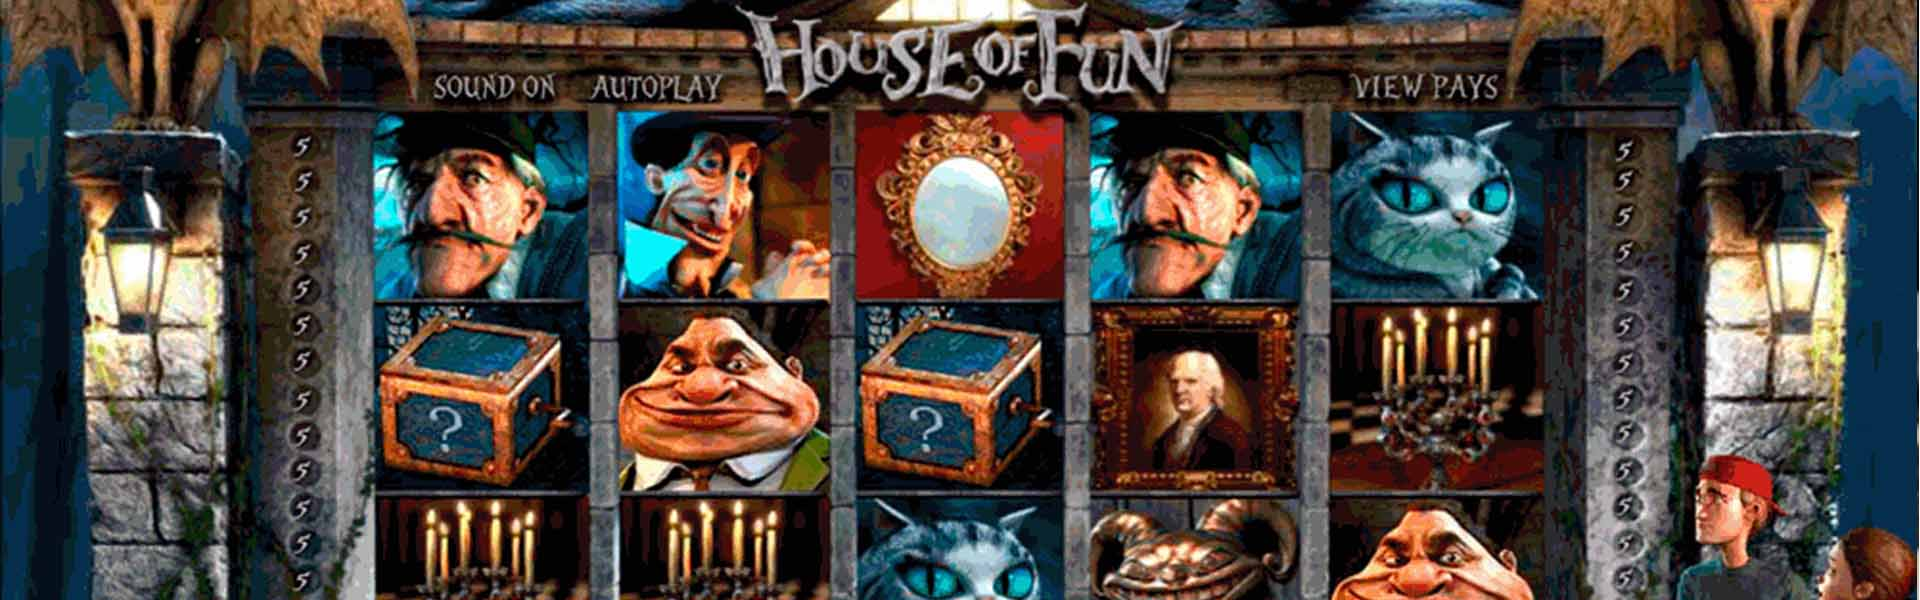 House of Fun Review 2019